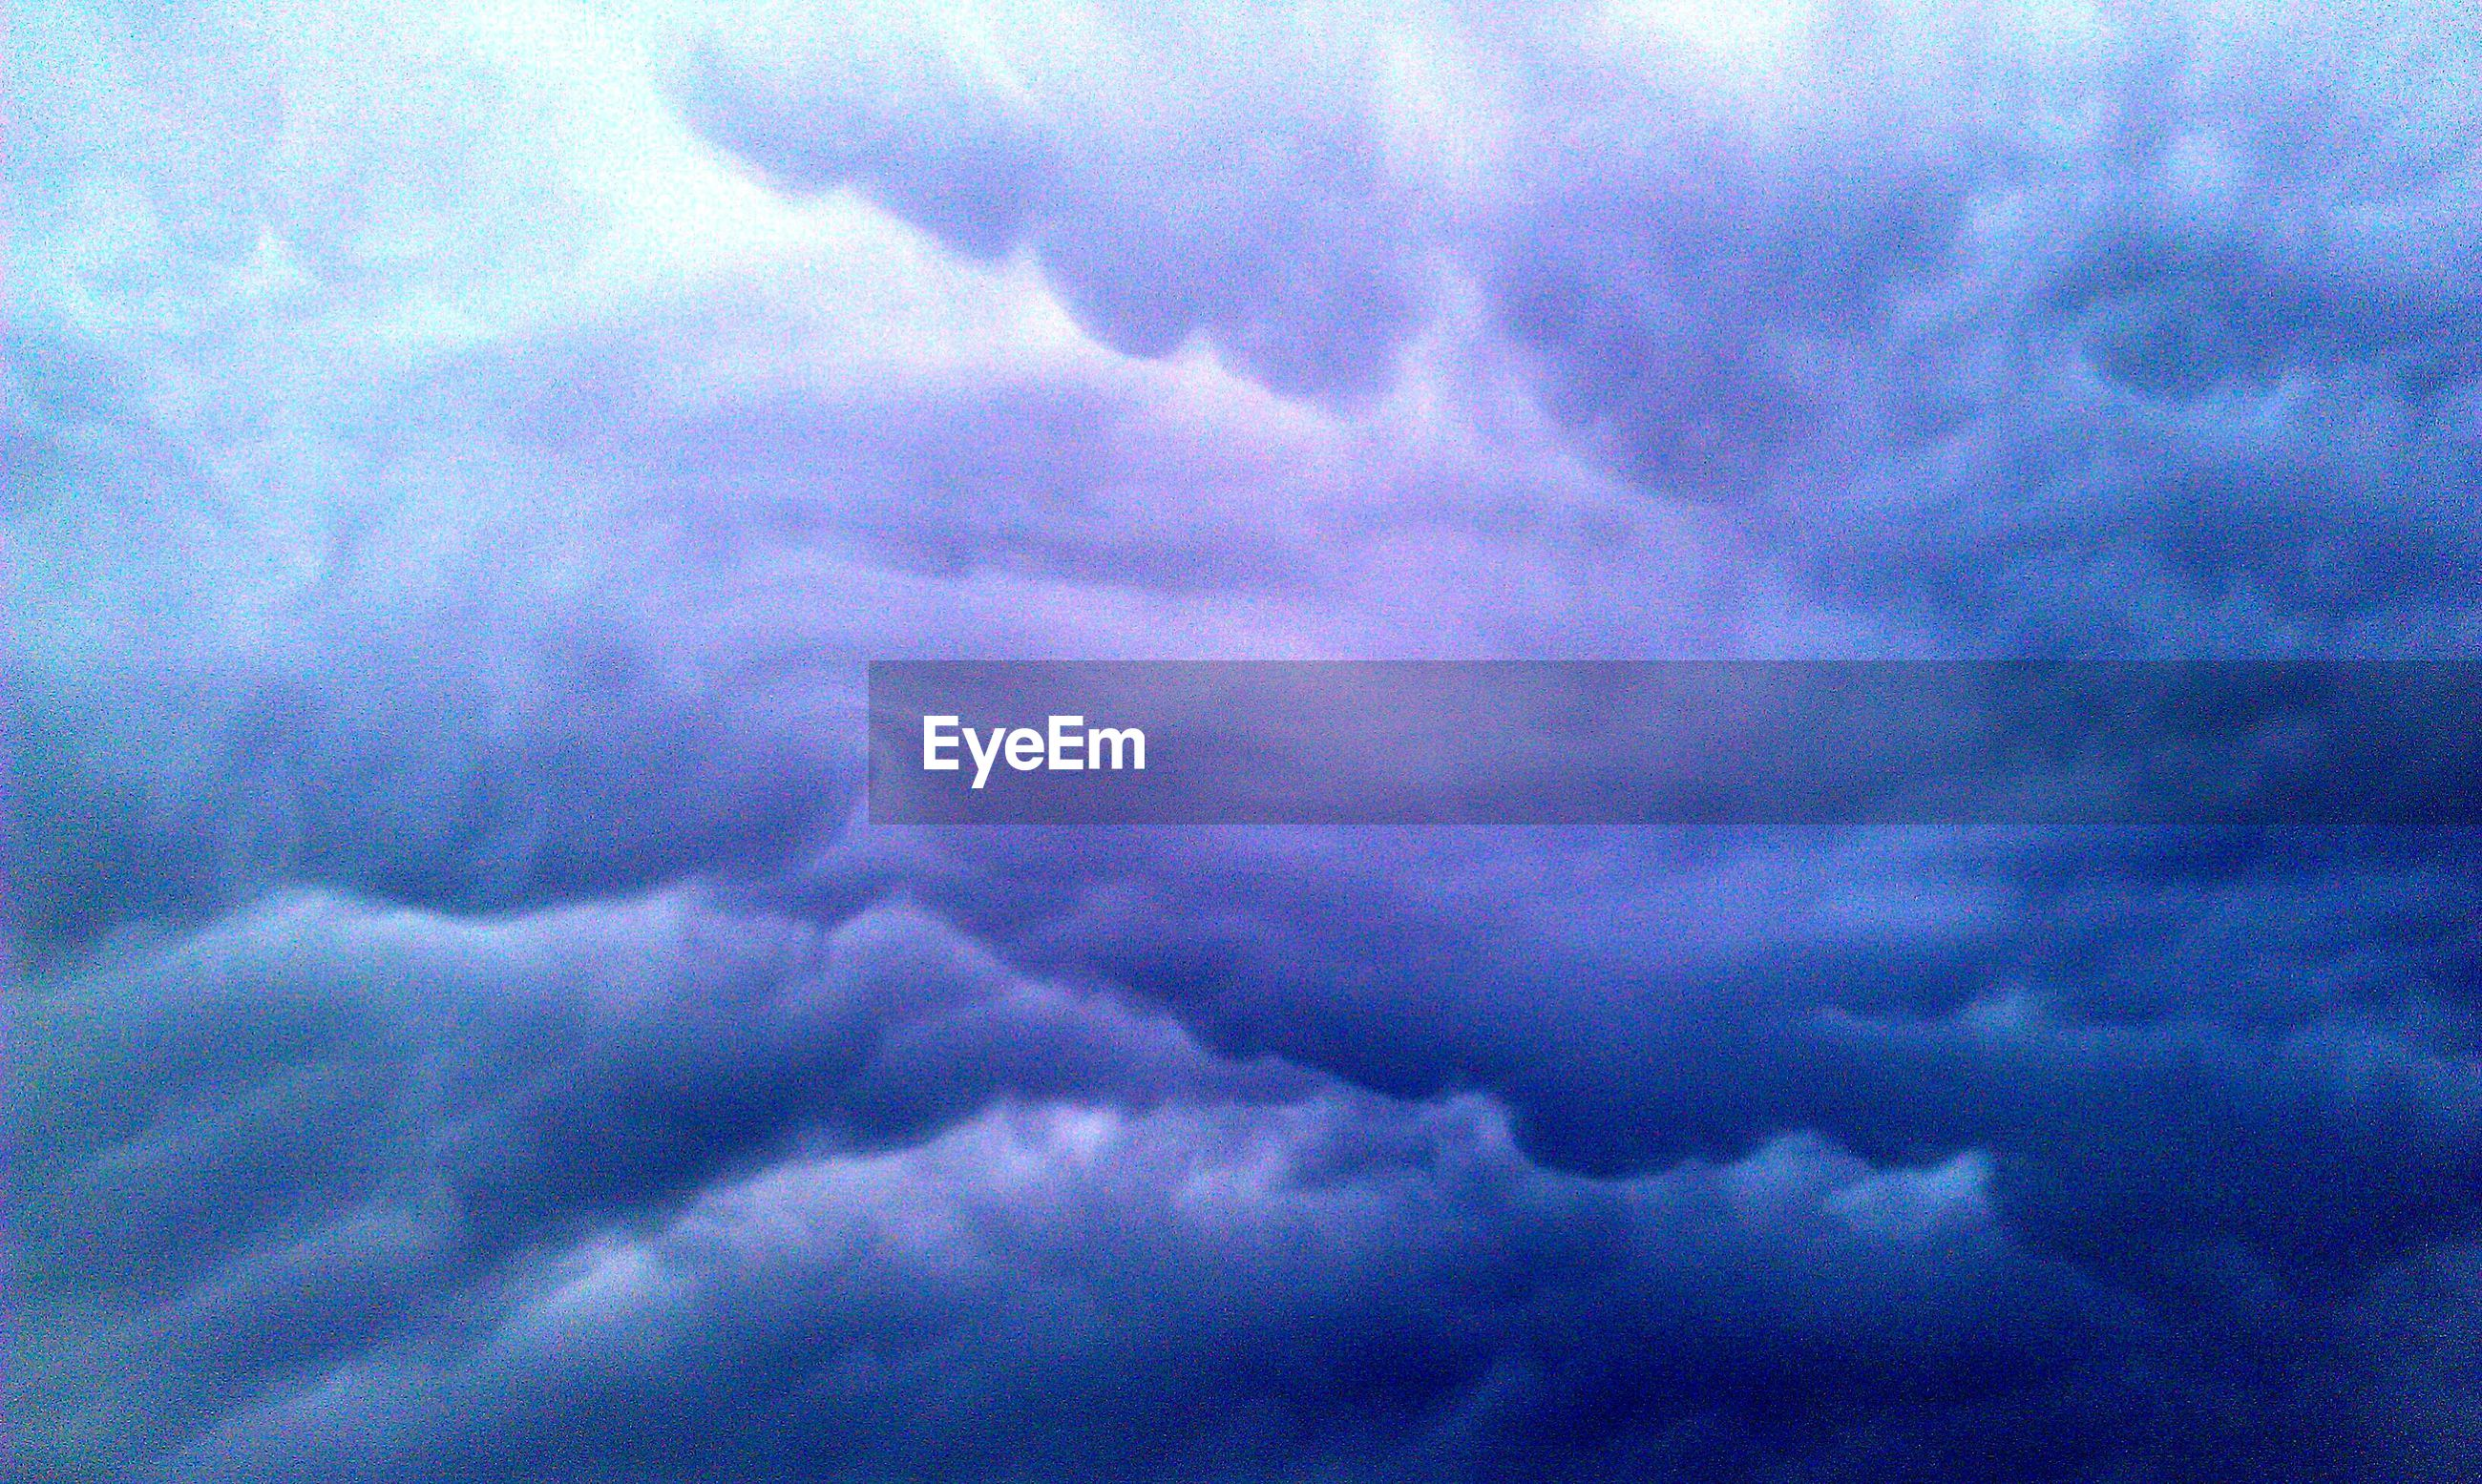 sky, cloud - sky, cloudy, cloudscape, beauty in nature, low angle view, weather, scenics, tranquility, sky only, storm cloud, nature, overcast, tranquil scene, cloud, backgrounds, dramatic sky, blue, idyllic, full frame